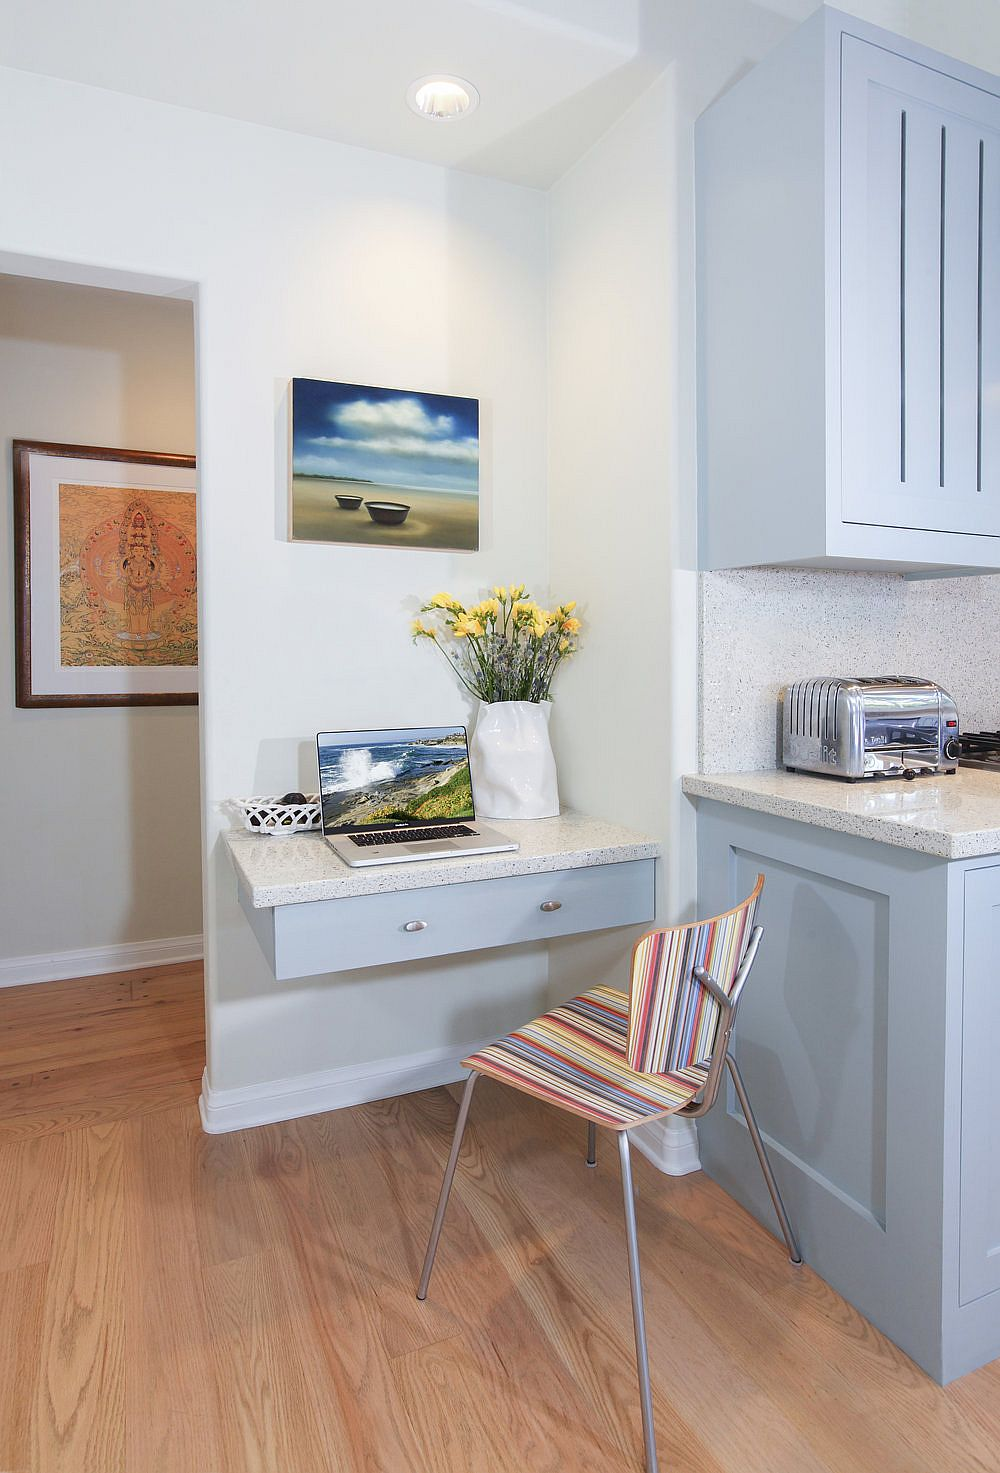 Simple floating drawer in the kitchen has been transformed into a work area!